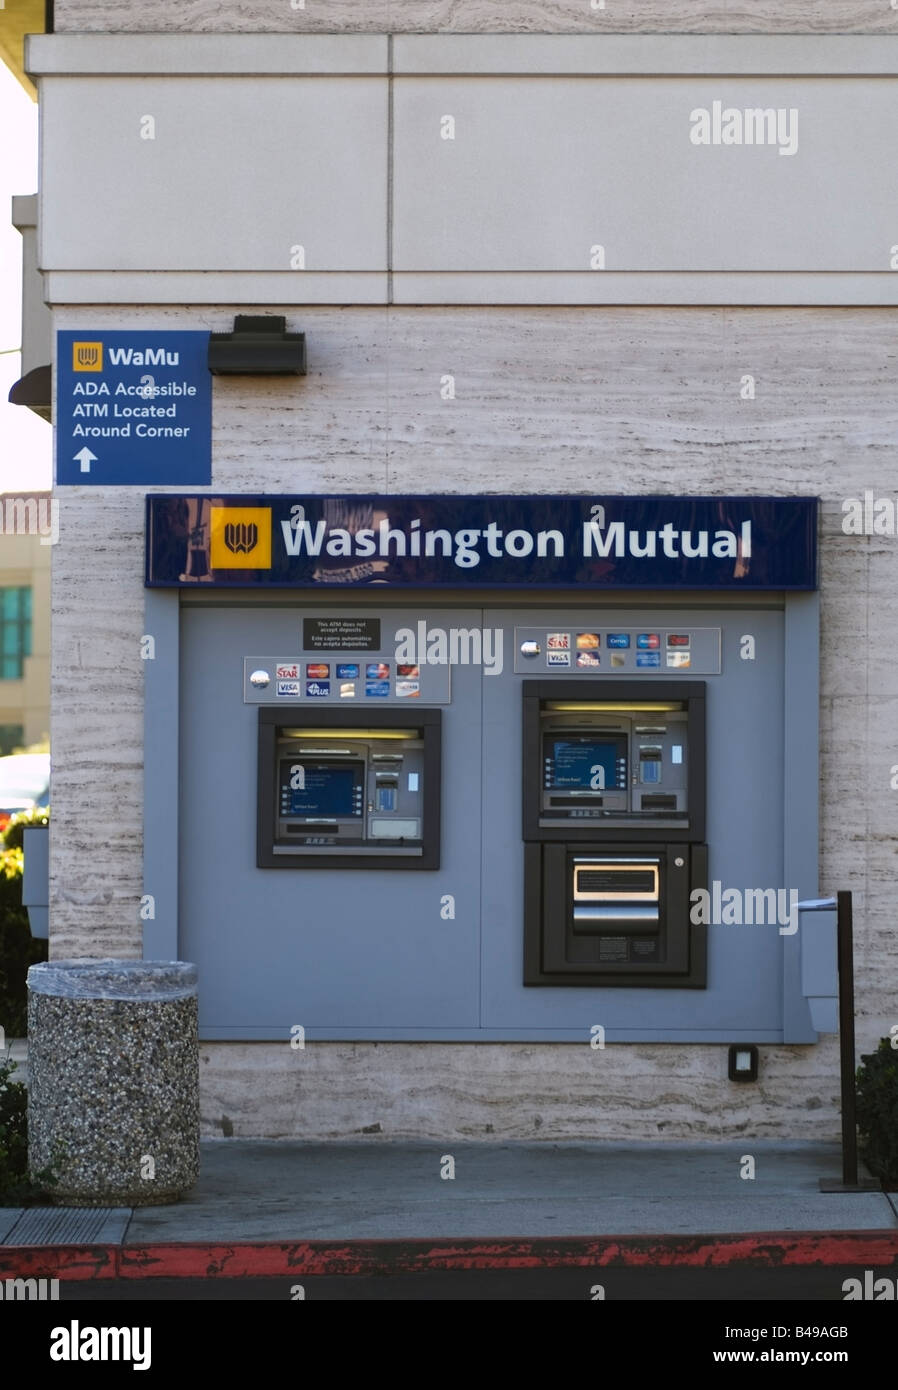 Washington Mutual (WaMu) ATM machine outside of a Branch in San Jose, CA. - Stock Image